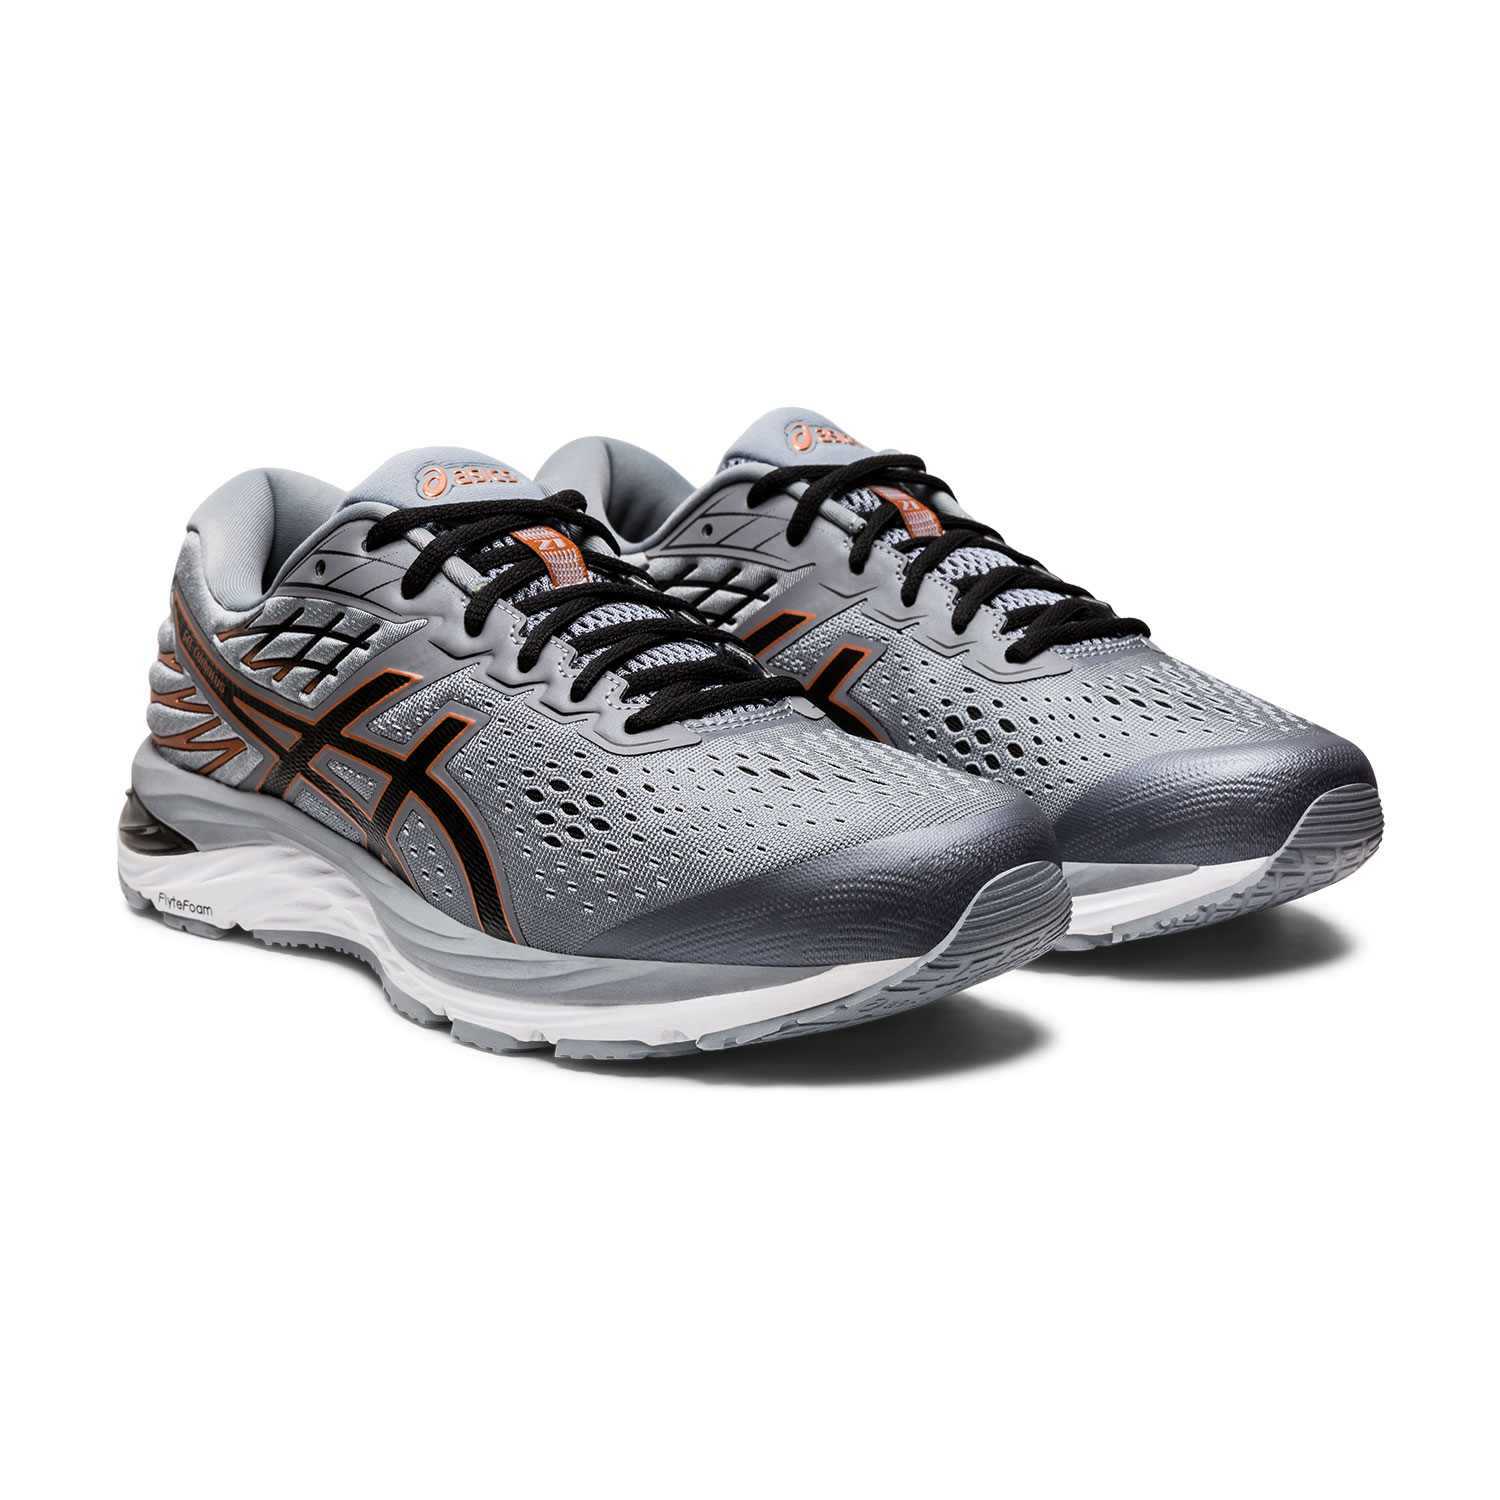 Asics Gel Cumulus 21 - Sheet Rock/Black